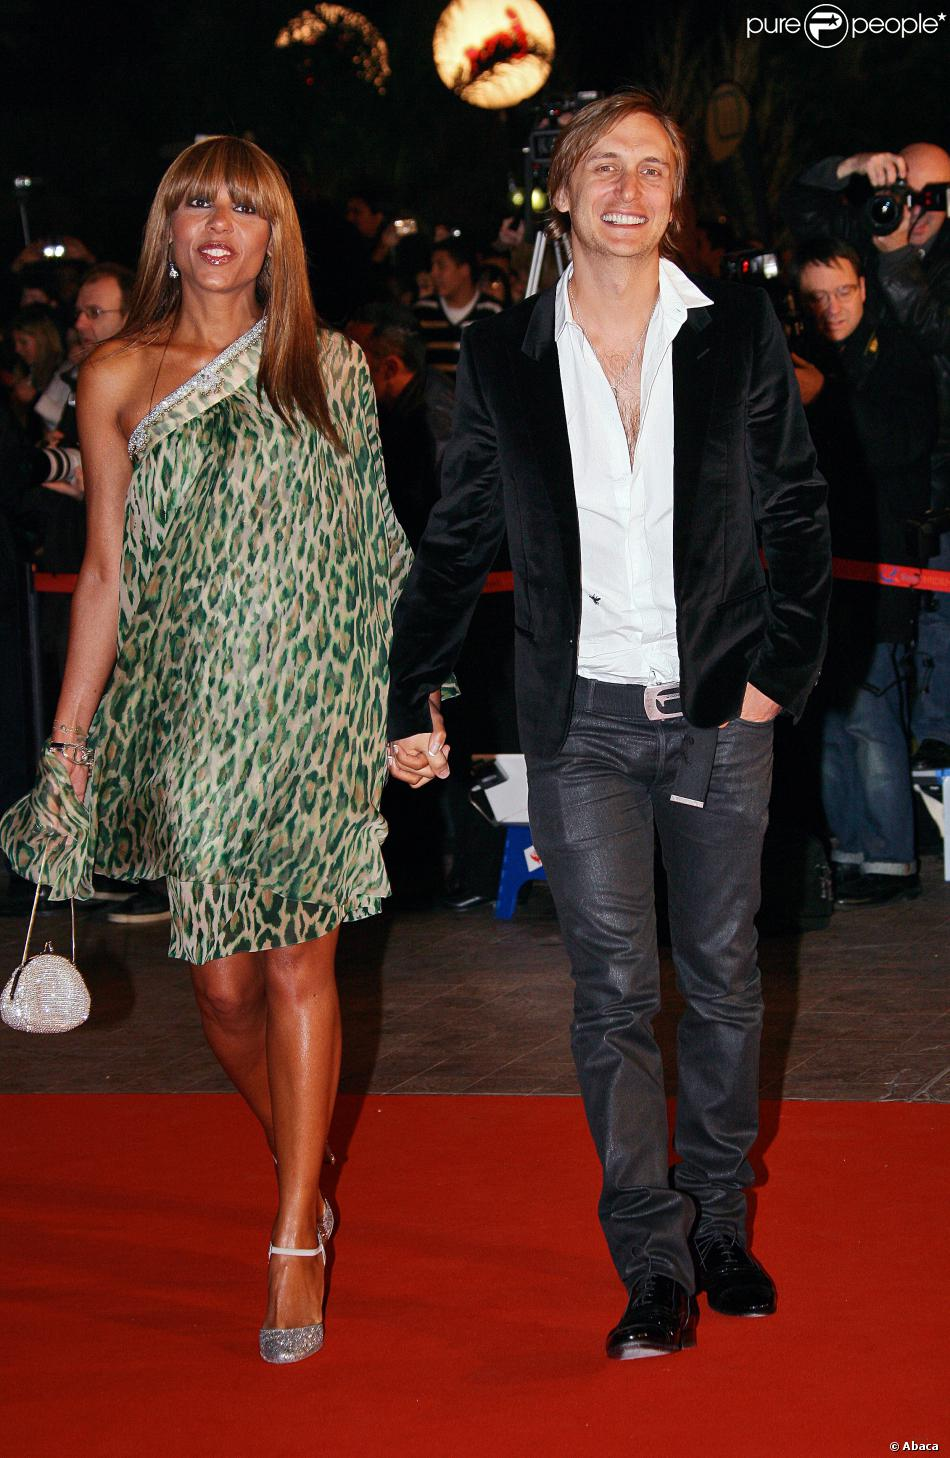 david et cathy guetta purepeople. Black Bedroom Furniture Sets. Home Design Ideas